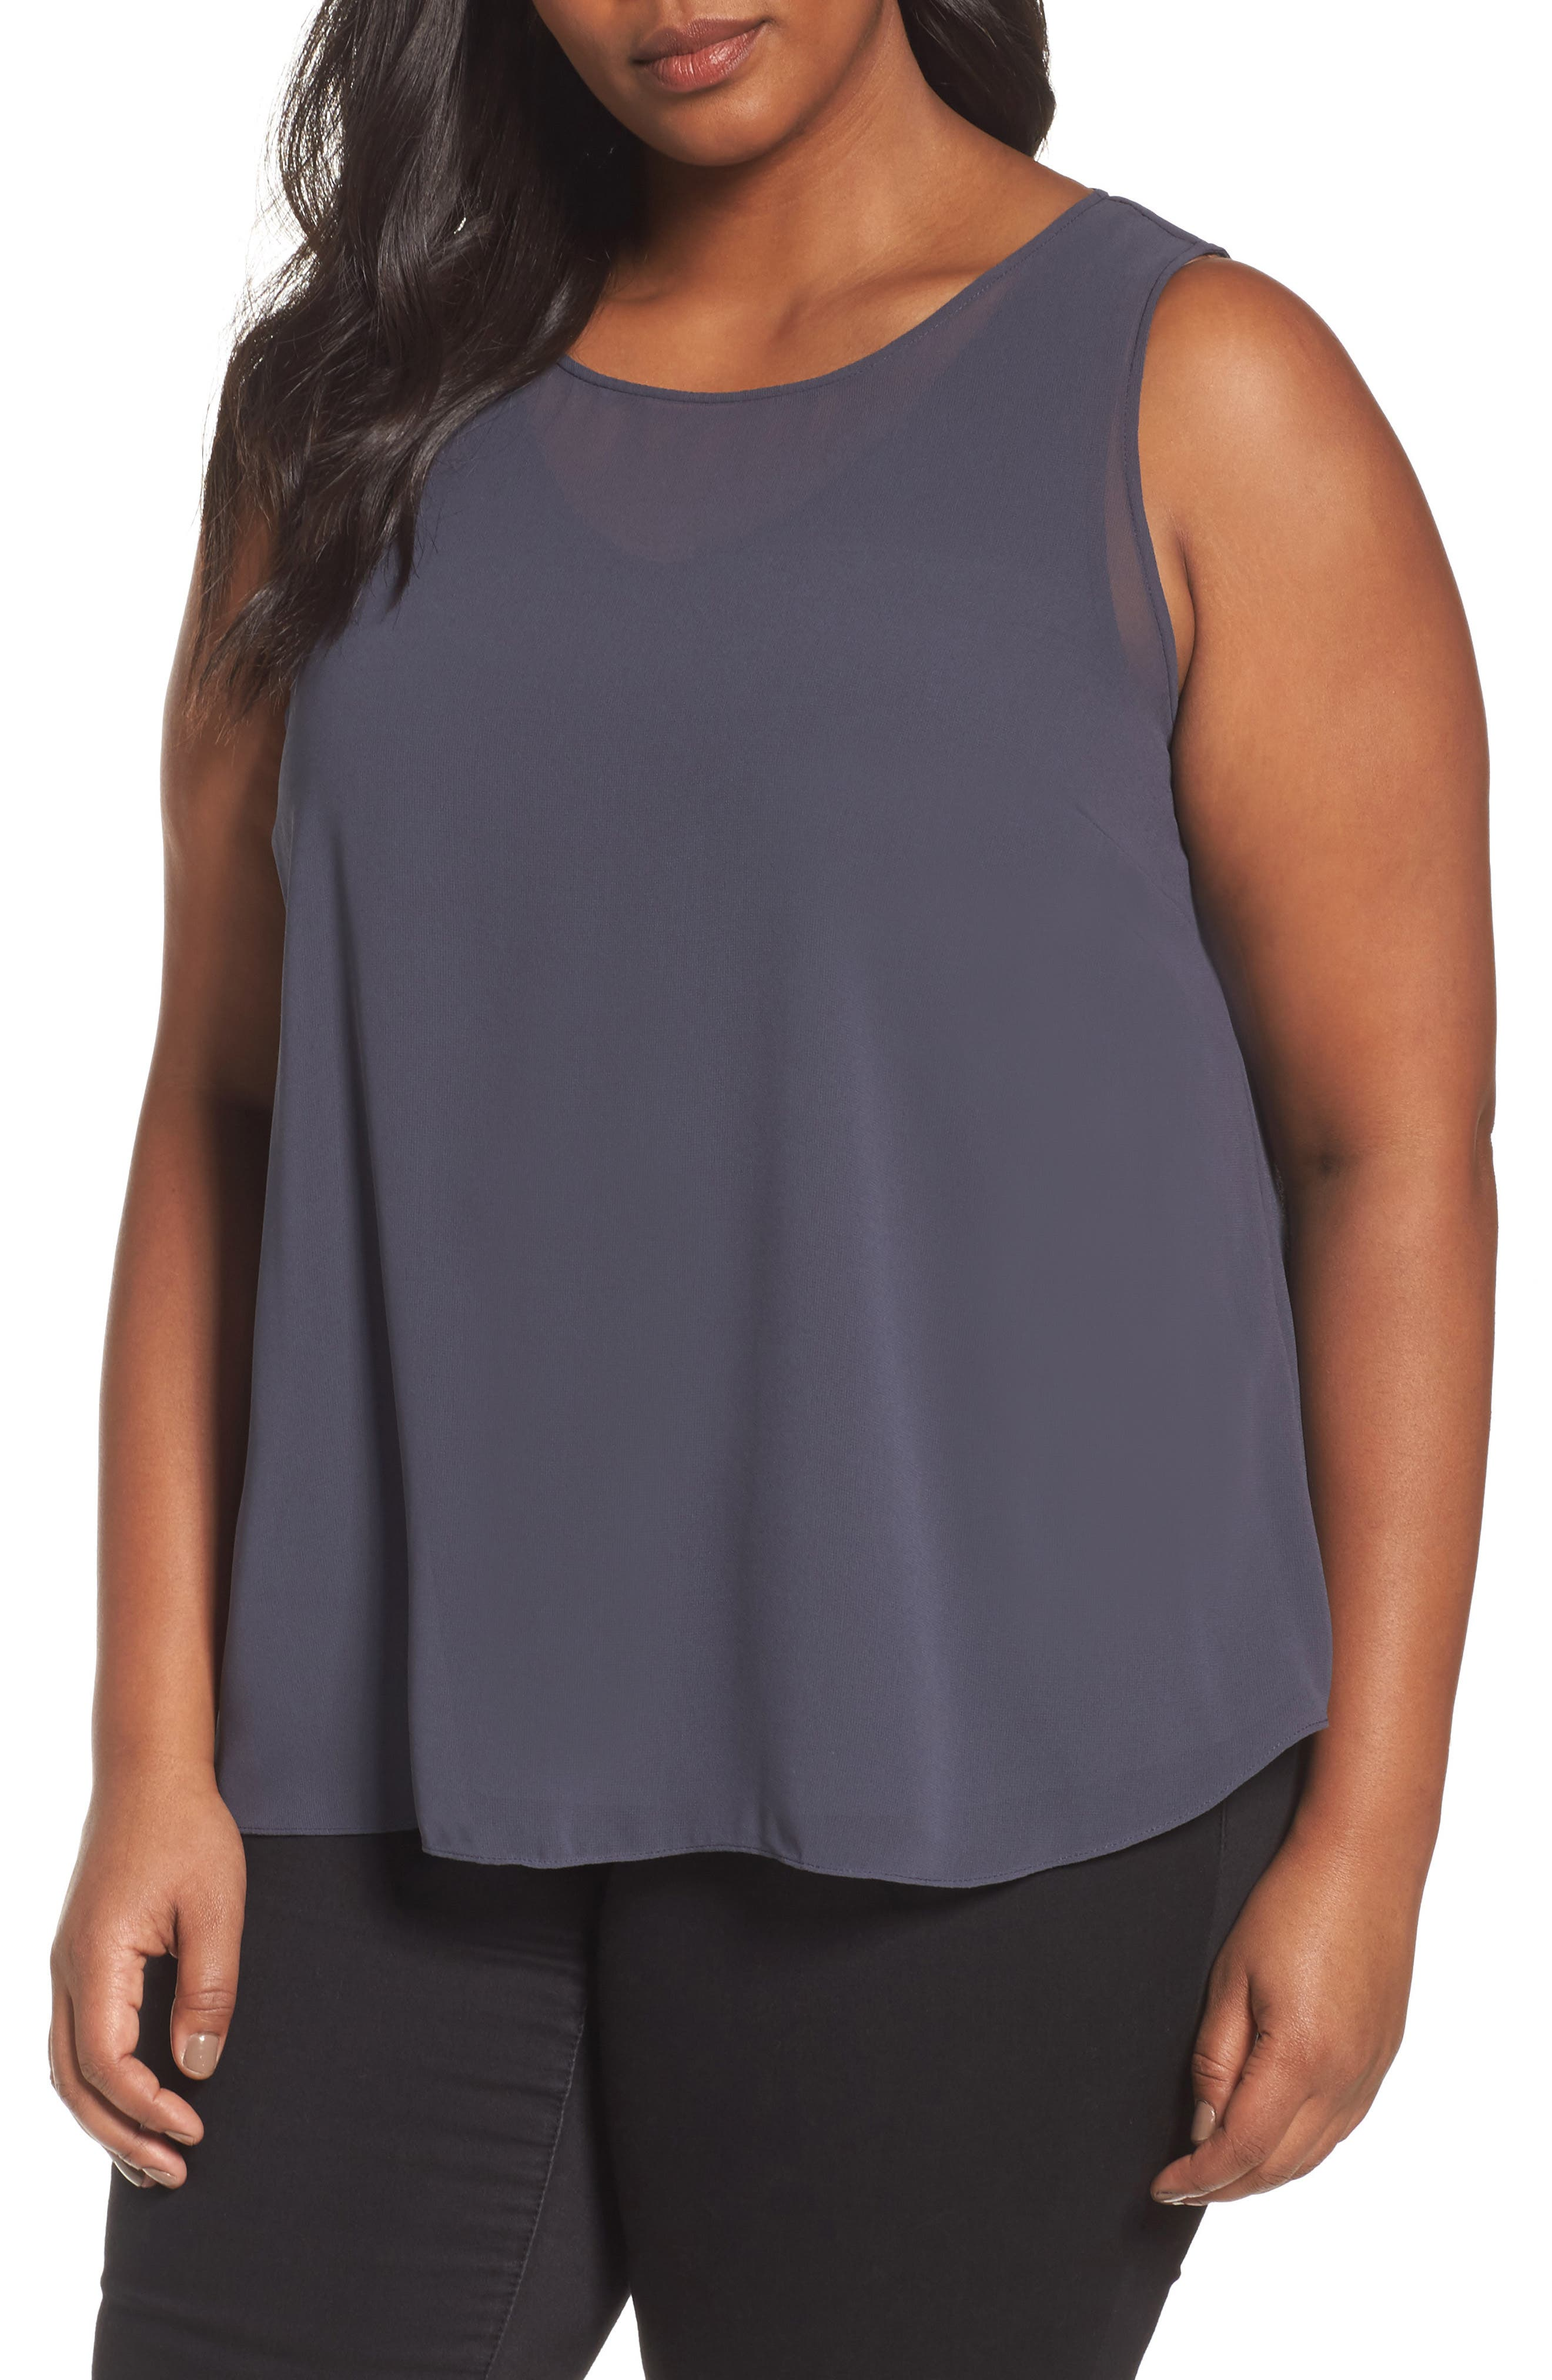 Alternate Image 1 Selected - NIC+ZOE Sheer Collection Top (Plus Size)